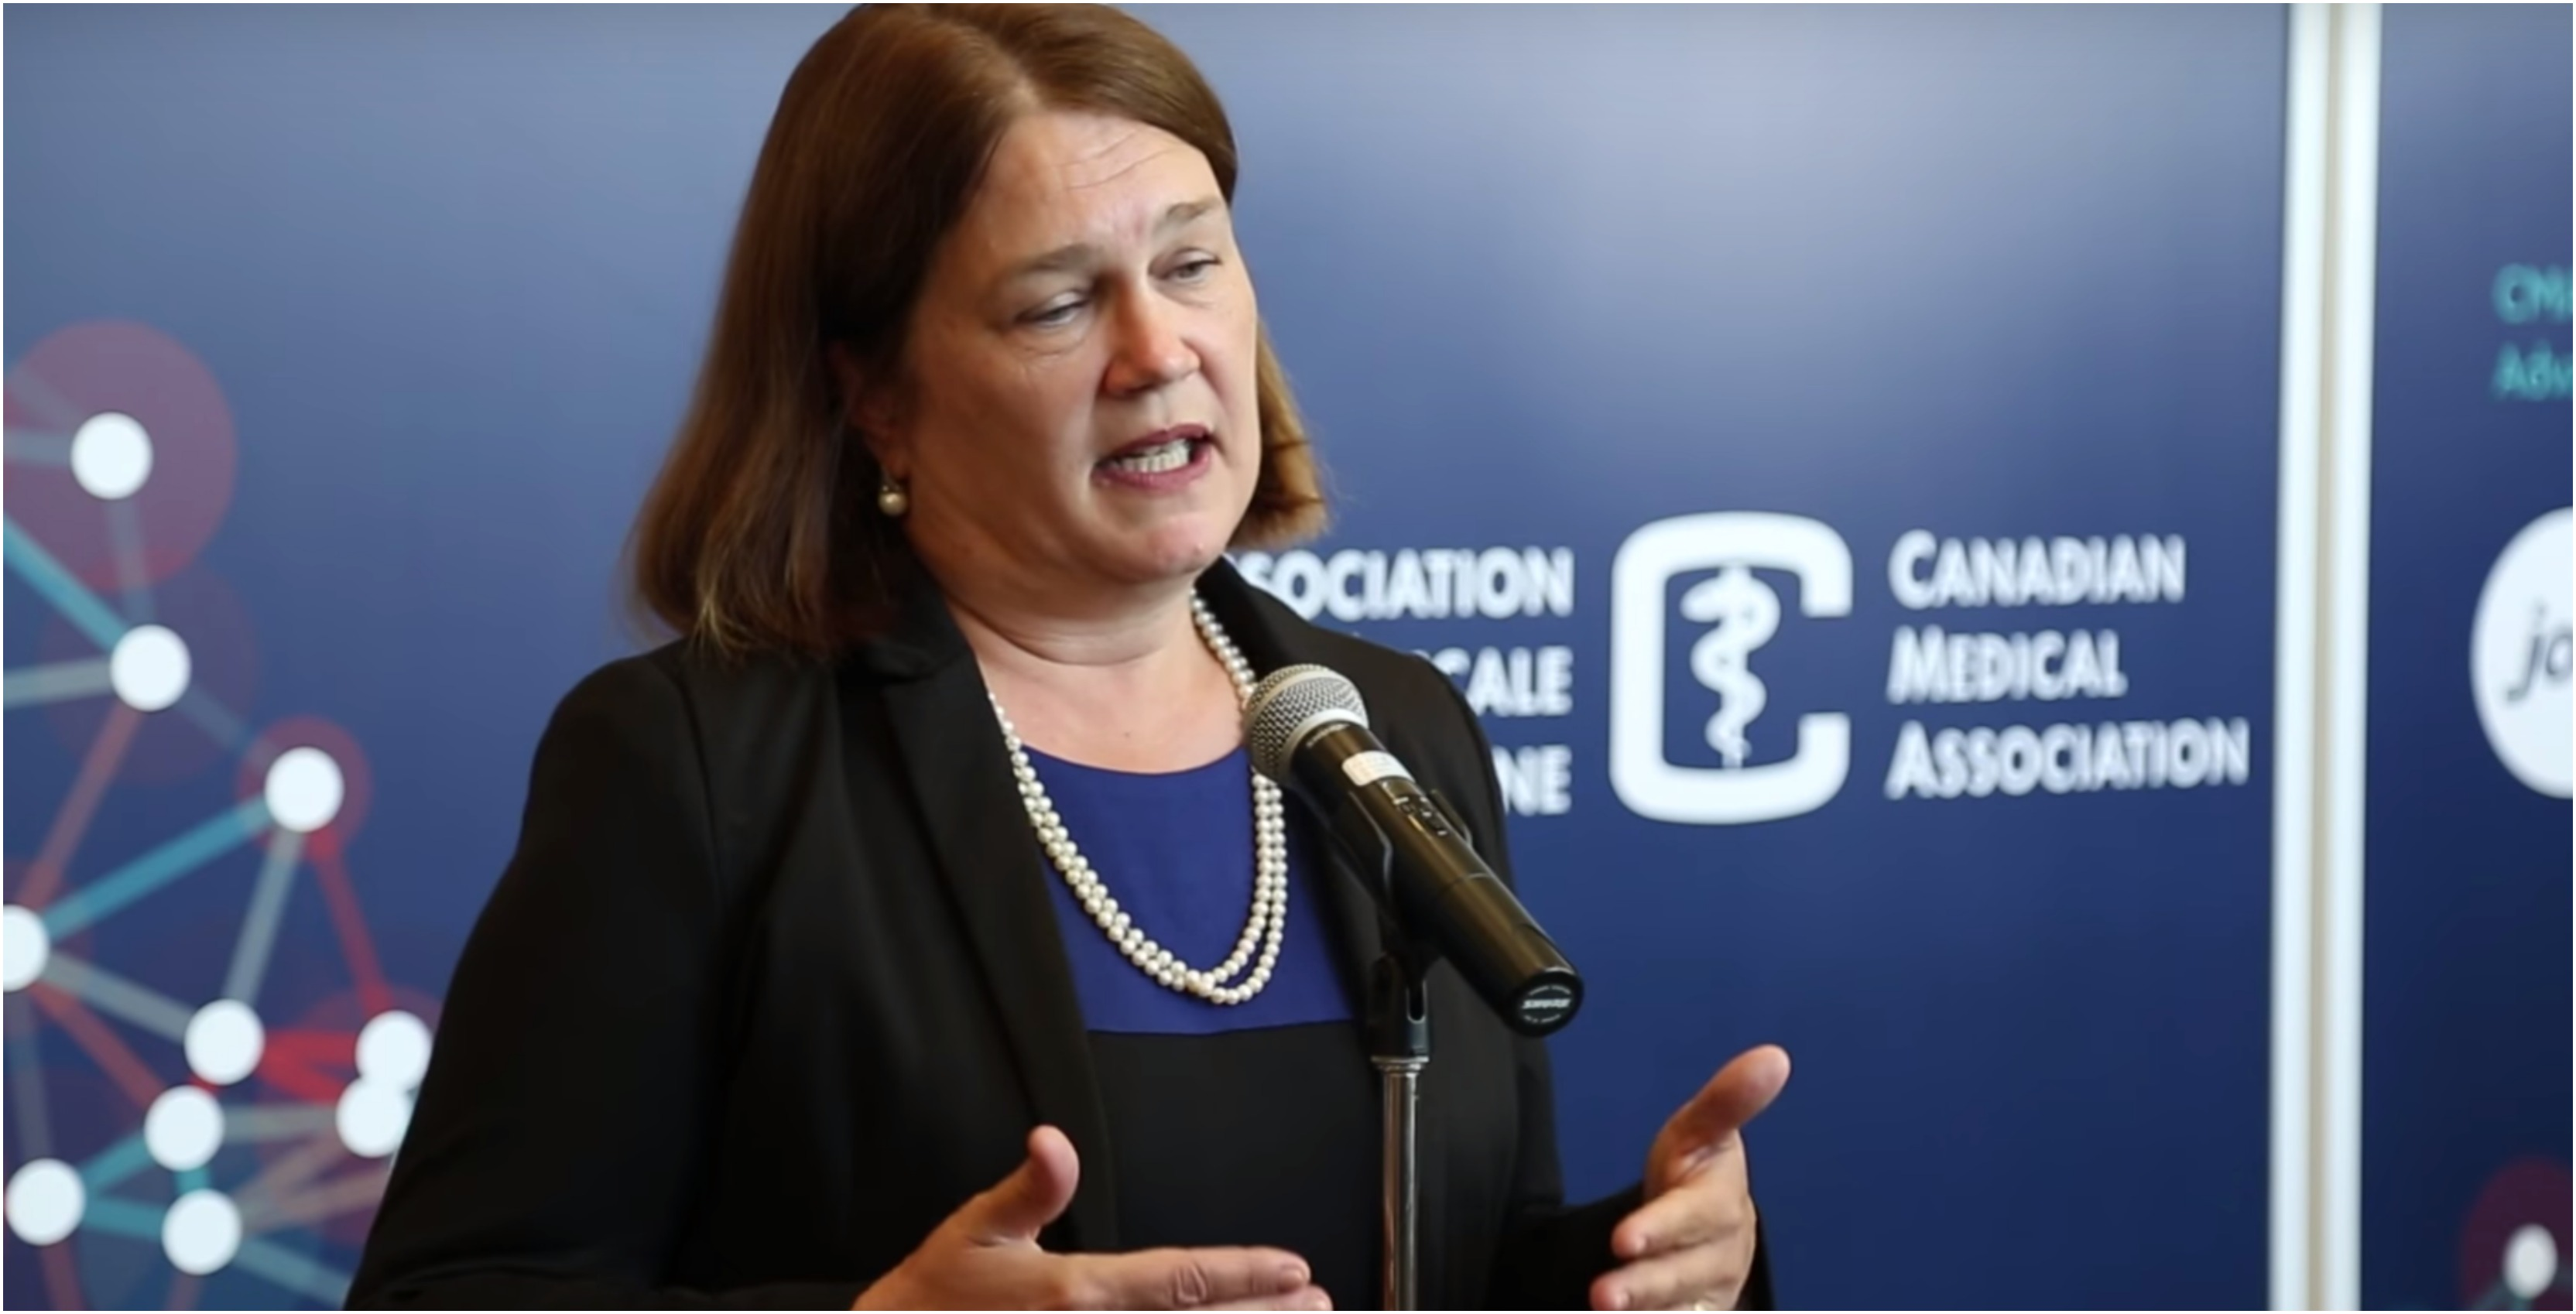 Treasury Board President Jane Philpott resigns from cabinet citing SNC-Lavalin affair